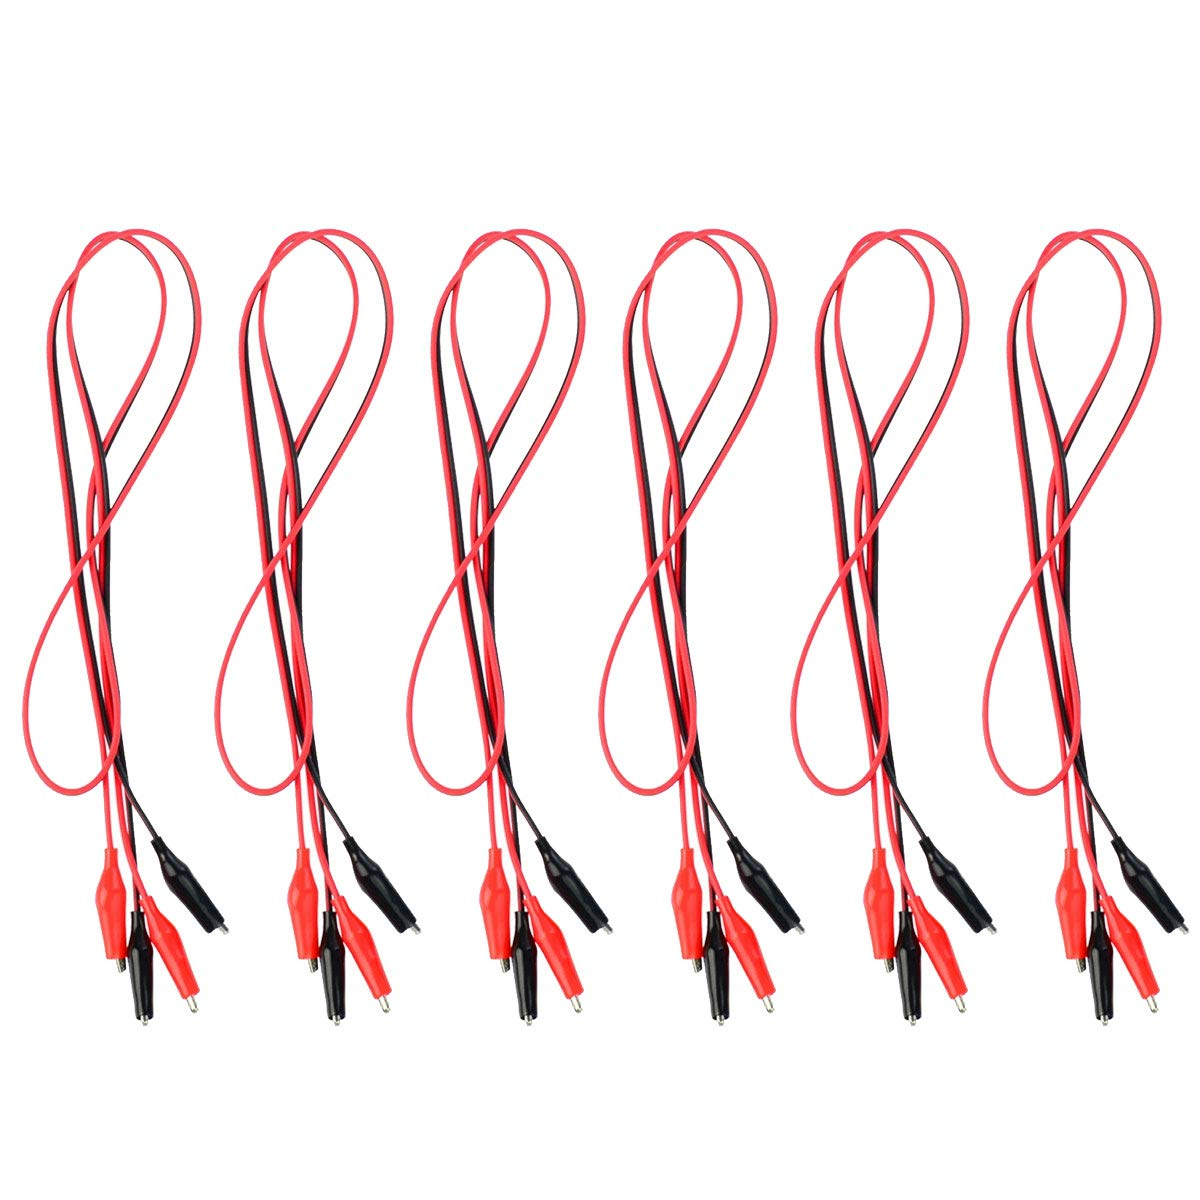 Alligator clips with wire clipart clipart library stock Wobe 6 Groups 1M Test Leads Set with Alligator Clips 39inches Double-ended  Jumper Wires Alligator Clamps Test Wires Crocodile Alligator Clip Wires ... clipart library stock